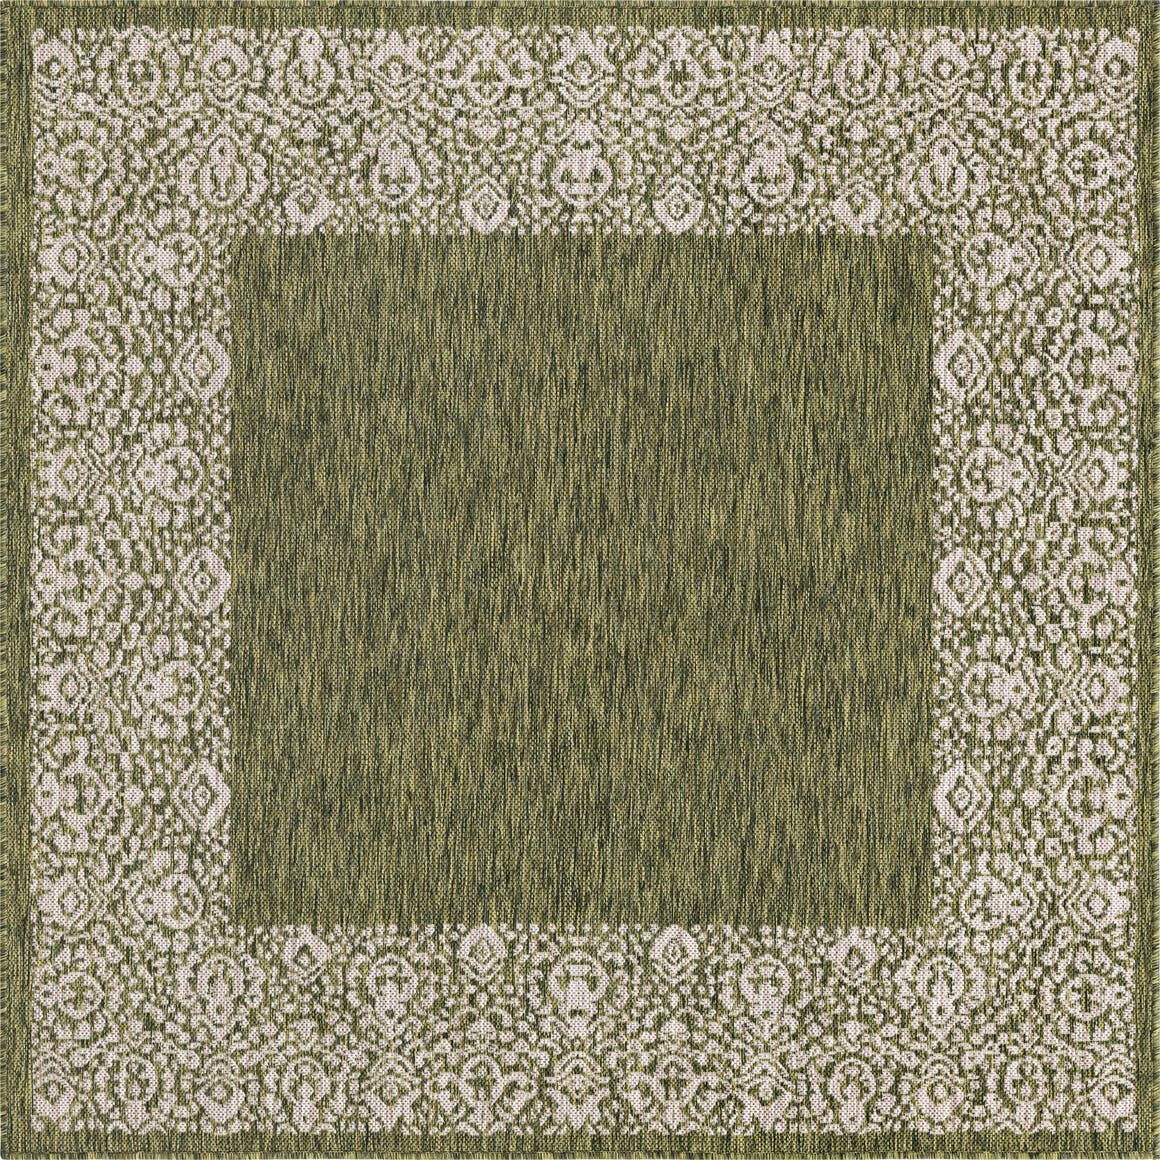 5' 3 x 5' 3 Outdoor Border Square Rug main image